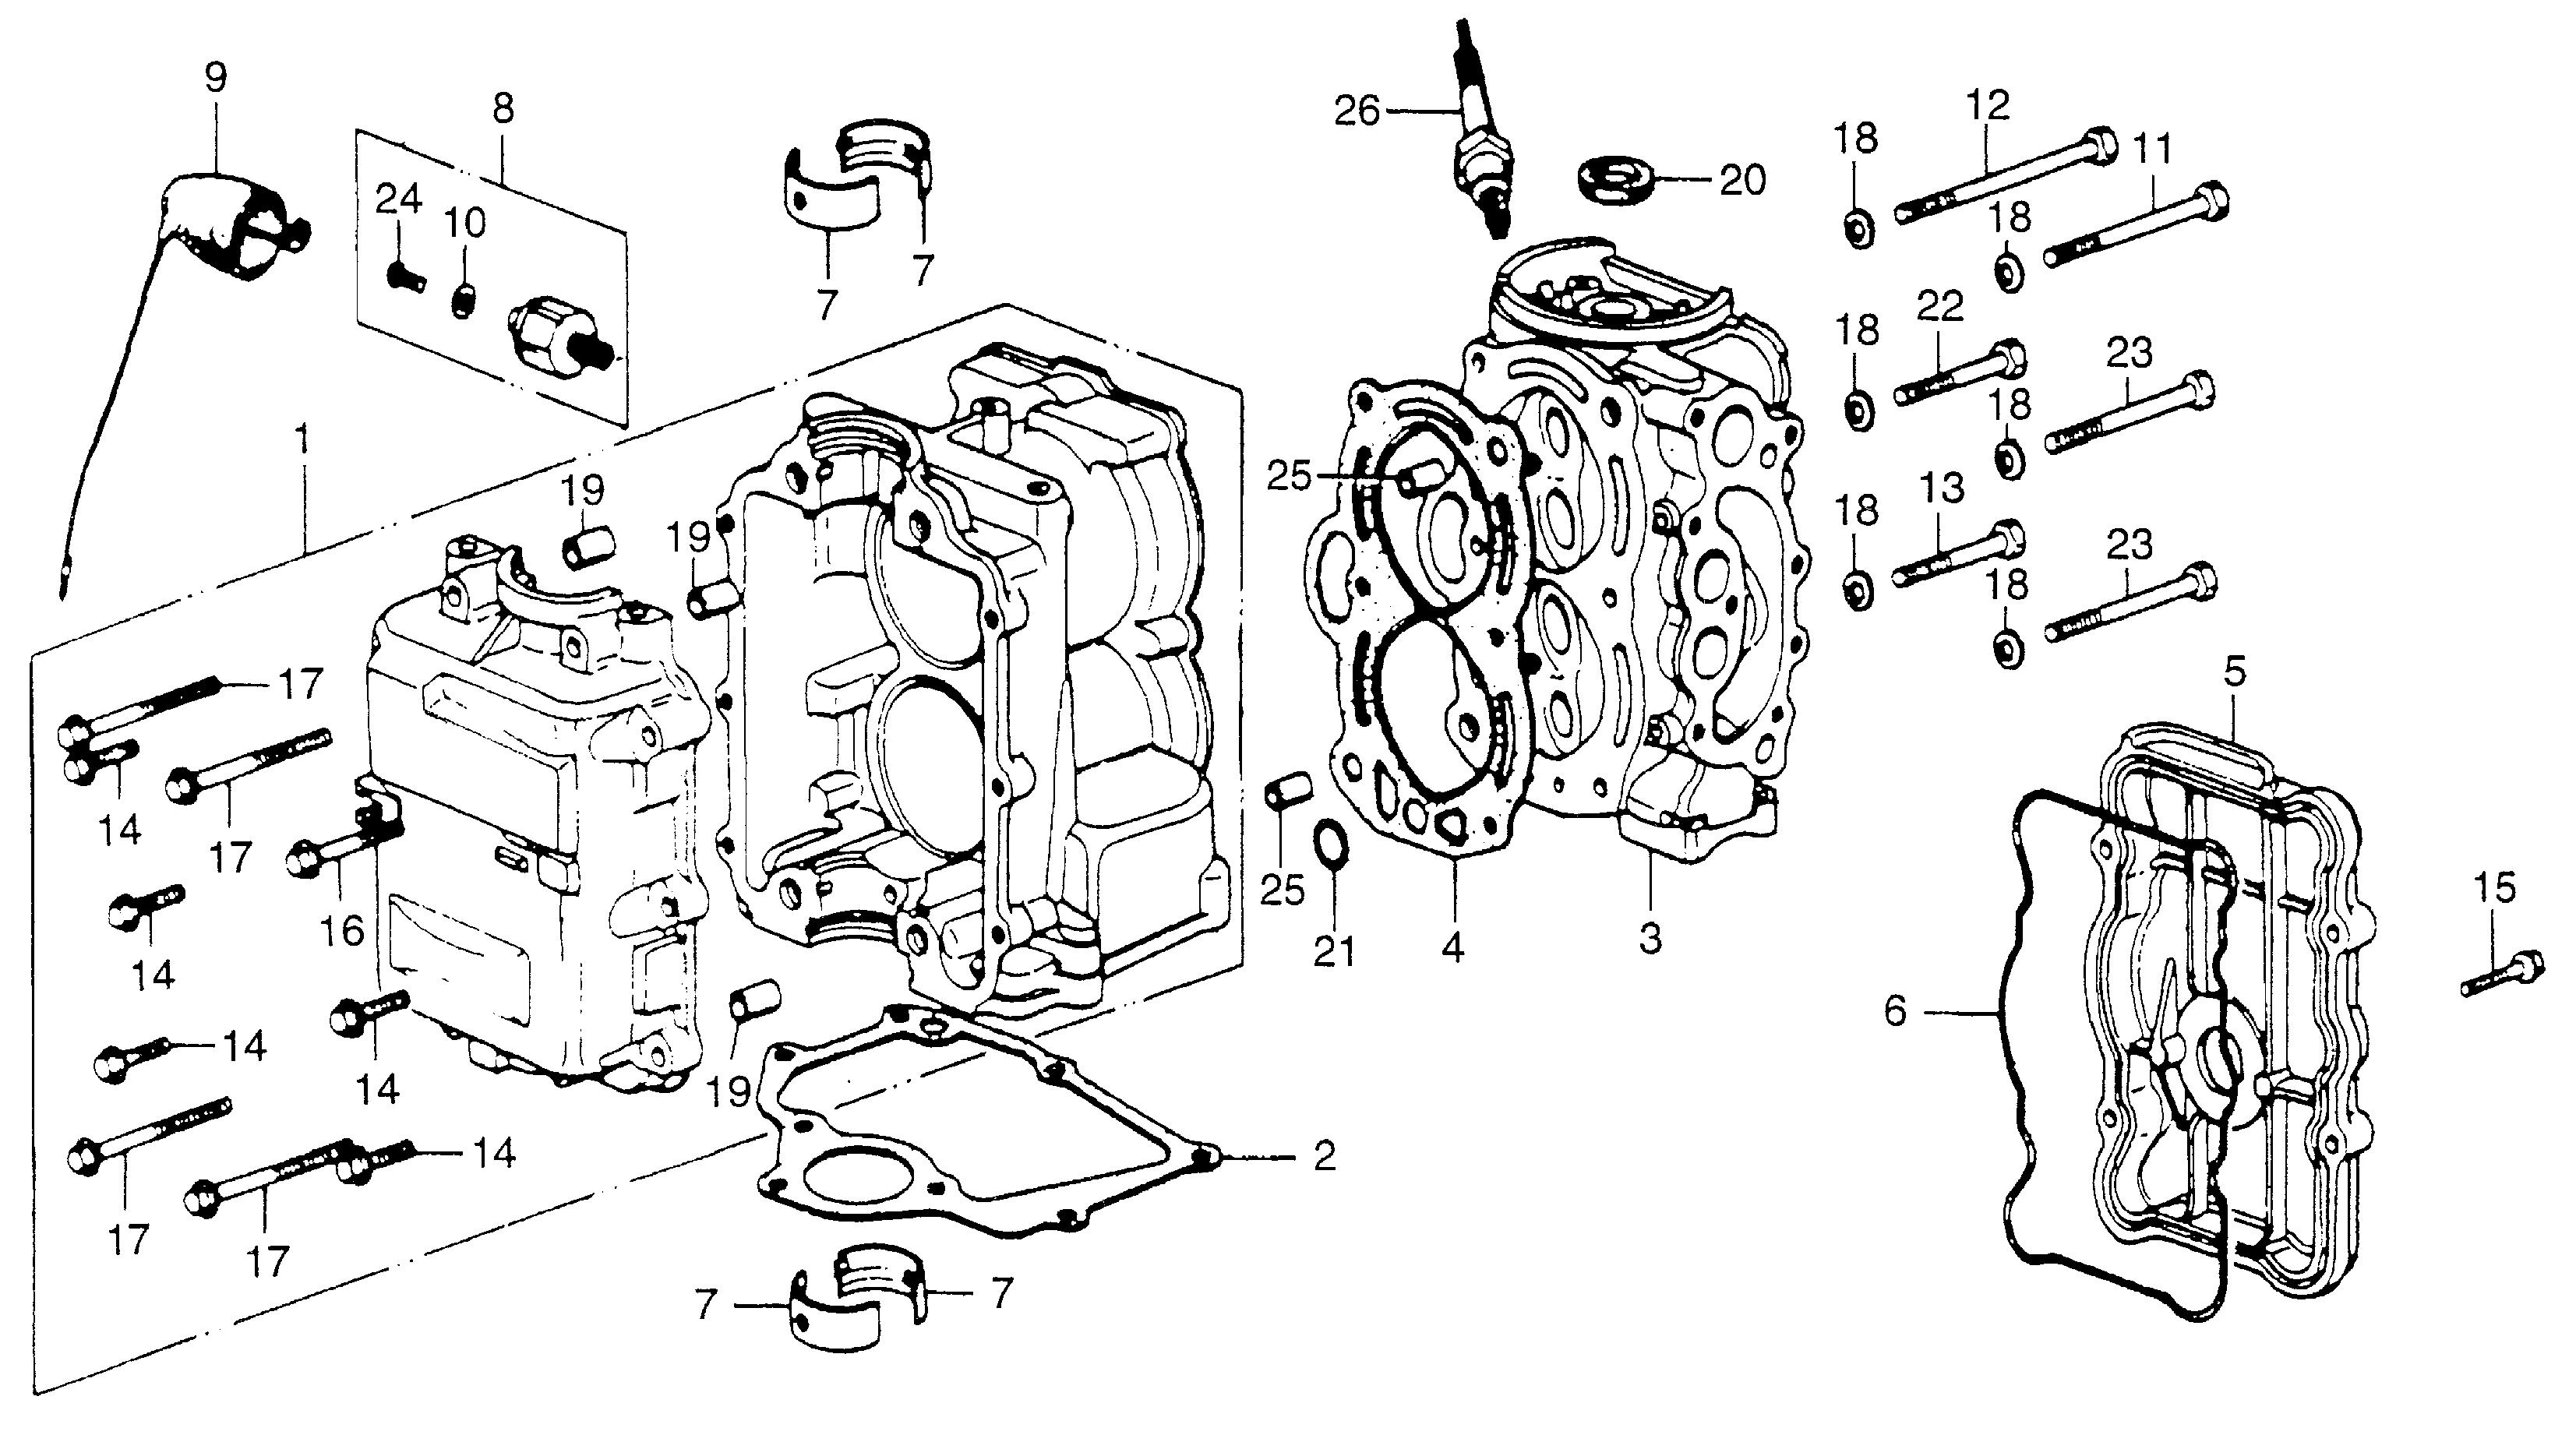 10 hp honda outboard parts diagram  u2022 wiring diagram for free